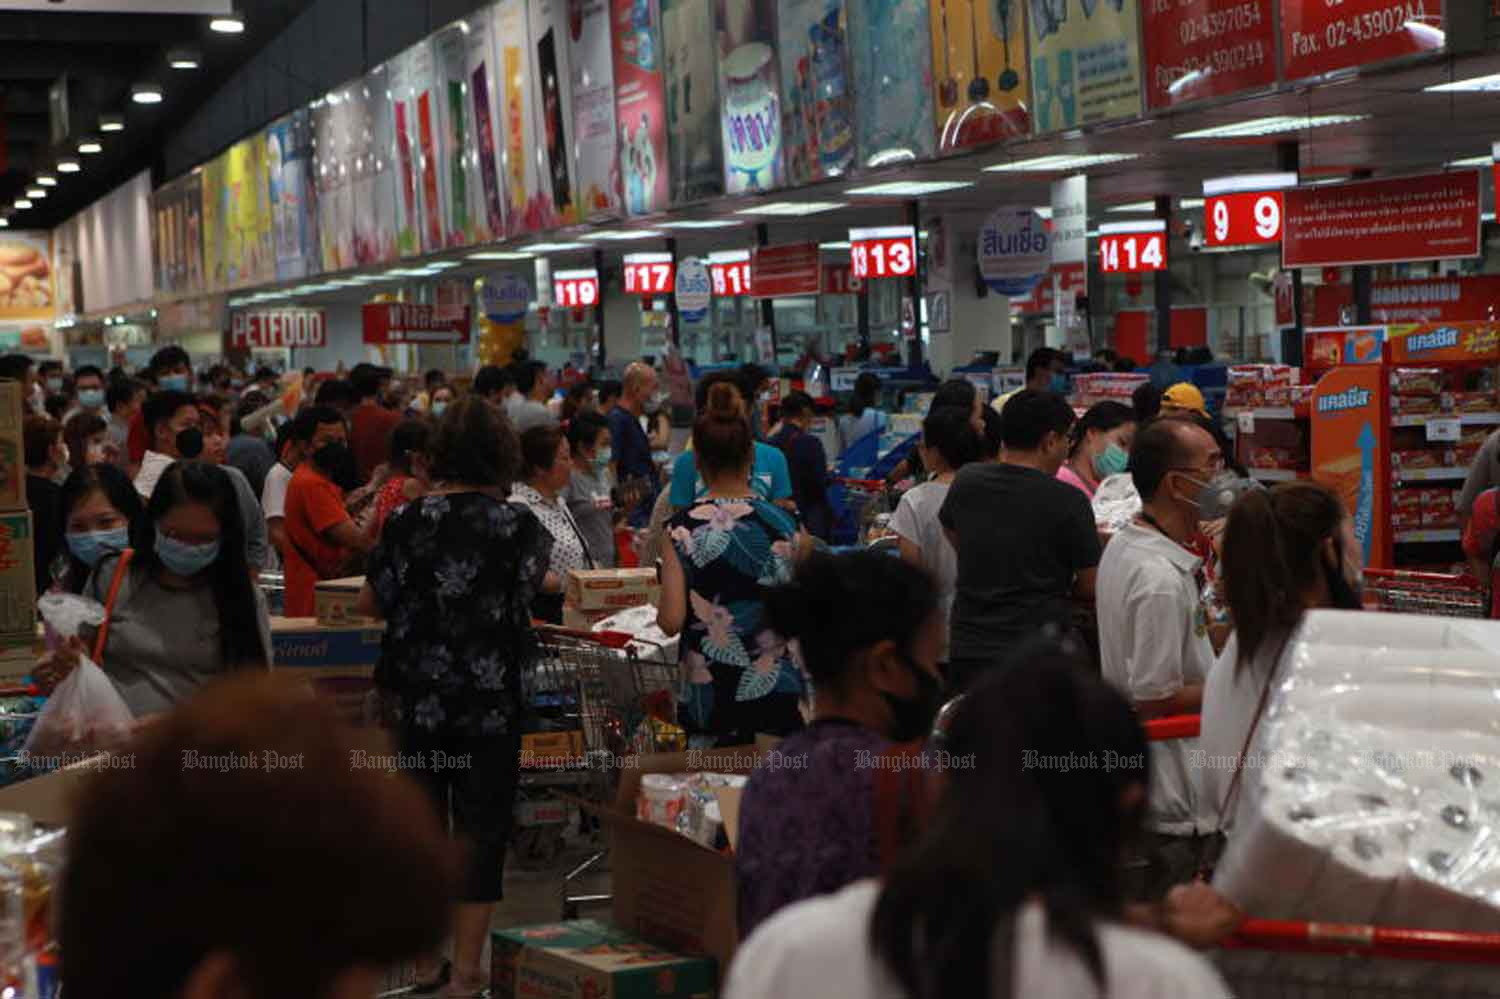 People flock into the Makro store in Bang Bon district, Bangkok, on Sunday to build up their stocks of consumer products. (Photo: Arnun Chonmahatrakool)